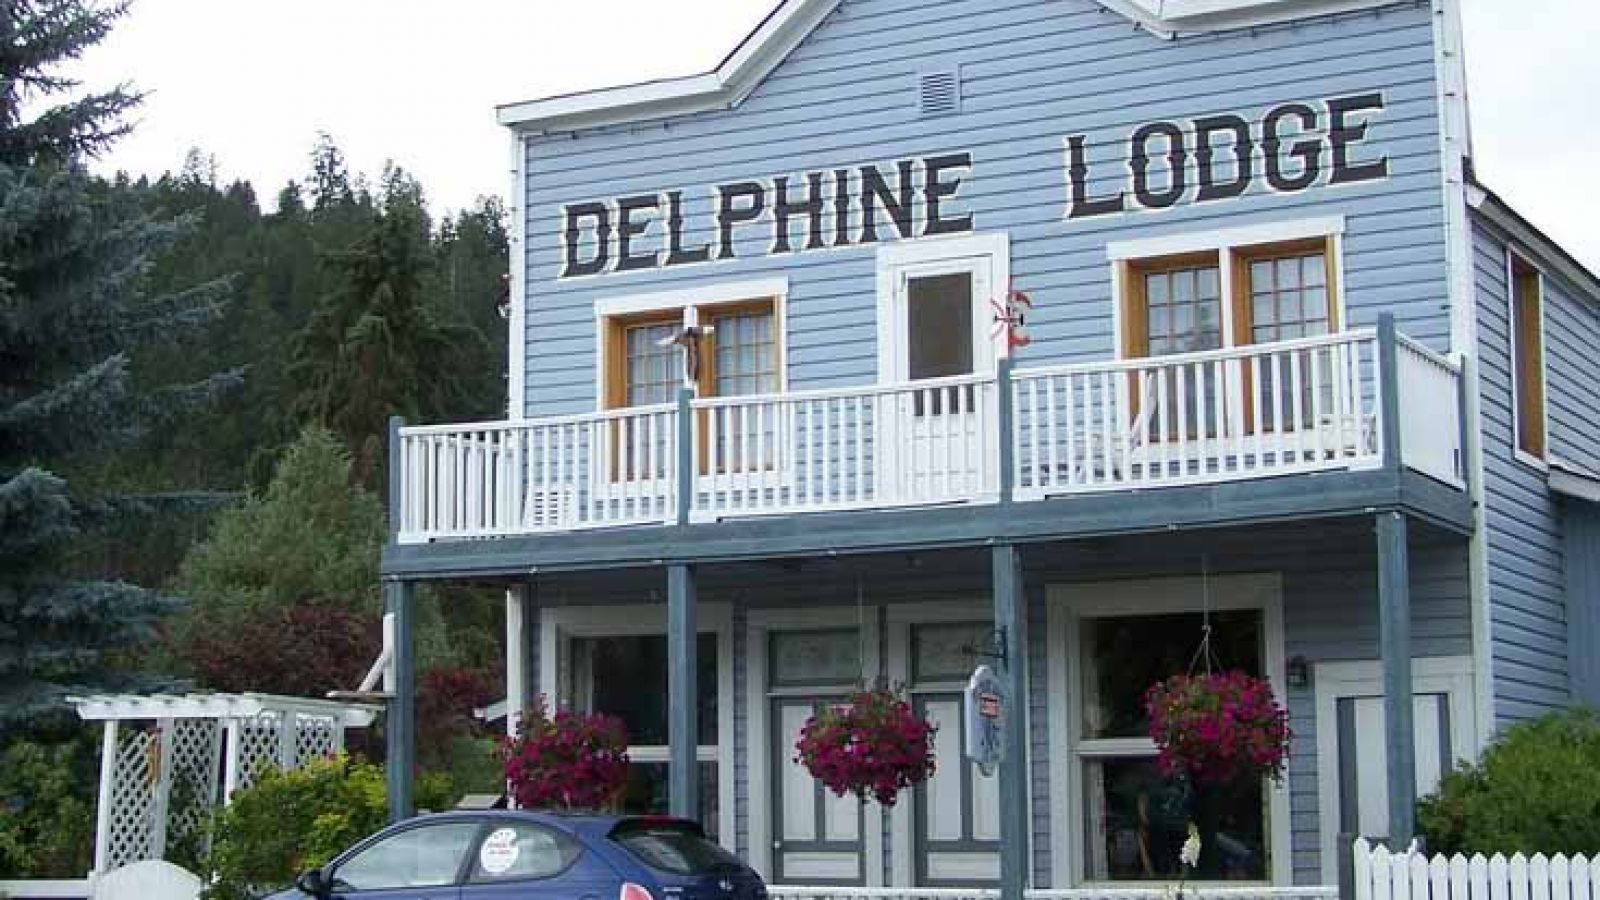 The Delphine Lodge Heritage Building in Wilmer.